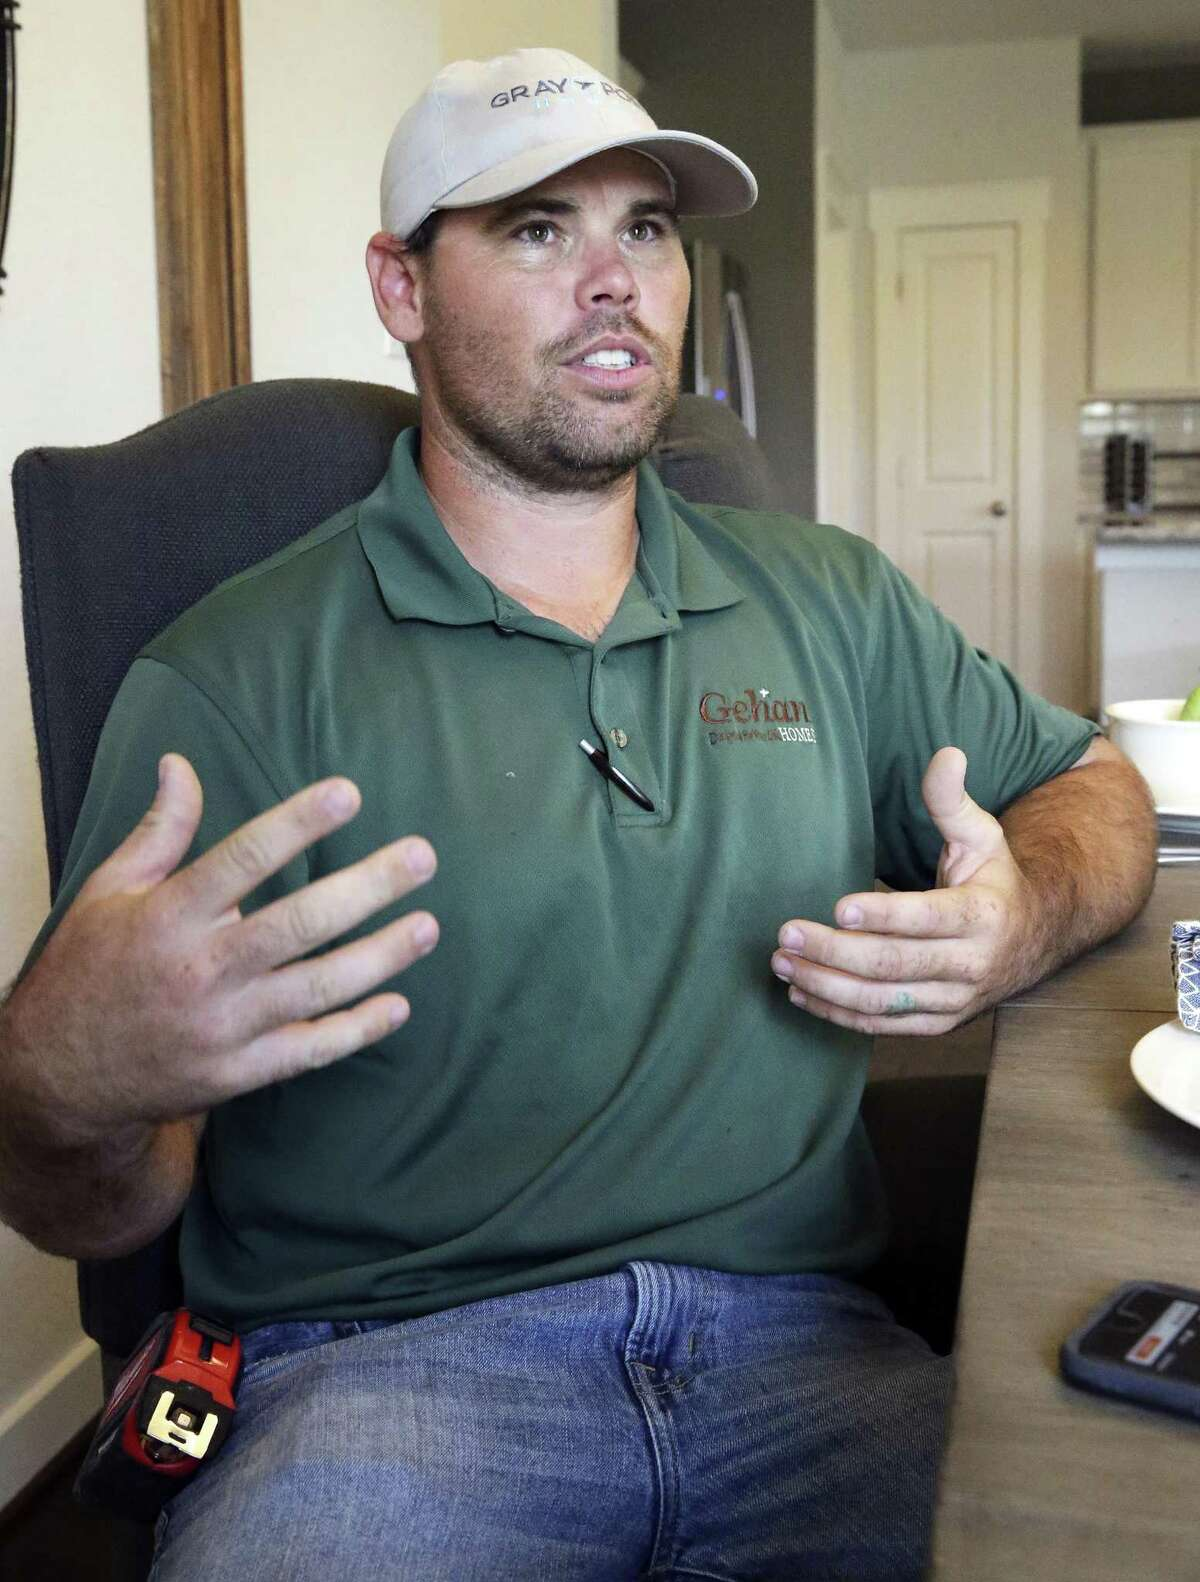 Robert Brogan of New Braunfels explains how he and others helped a truck driver out of his burning, wrecked truck on the southbound lanes of U.S. 281 in San Antonio. Brogan was interviewed Thursday, the day after the crash.